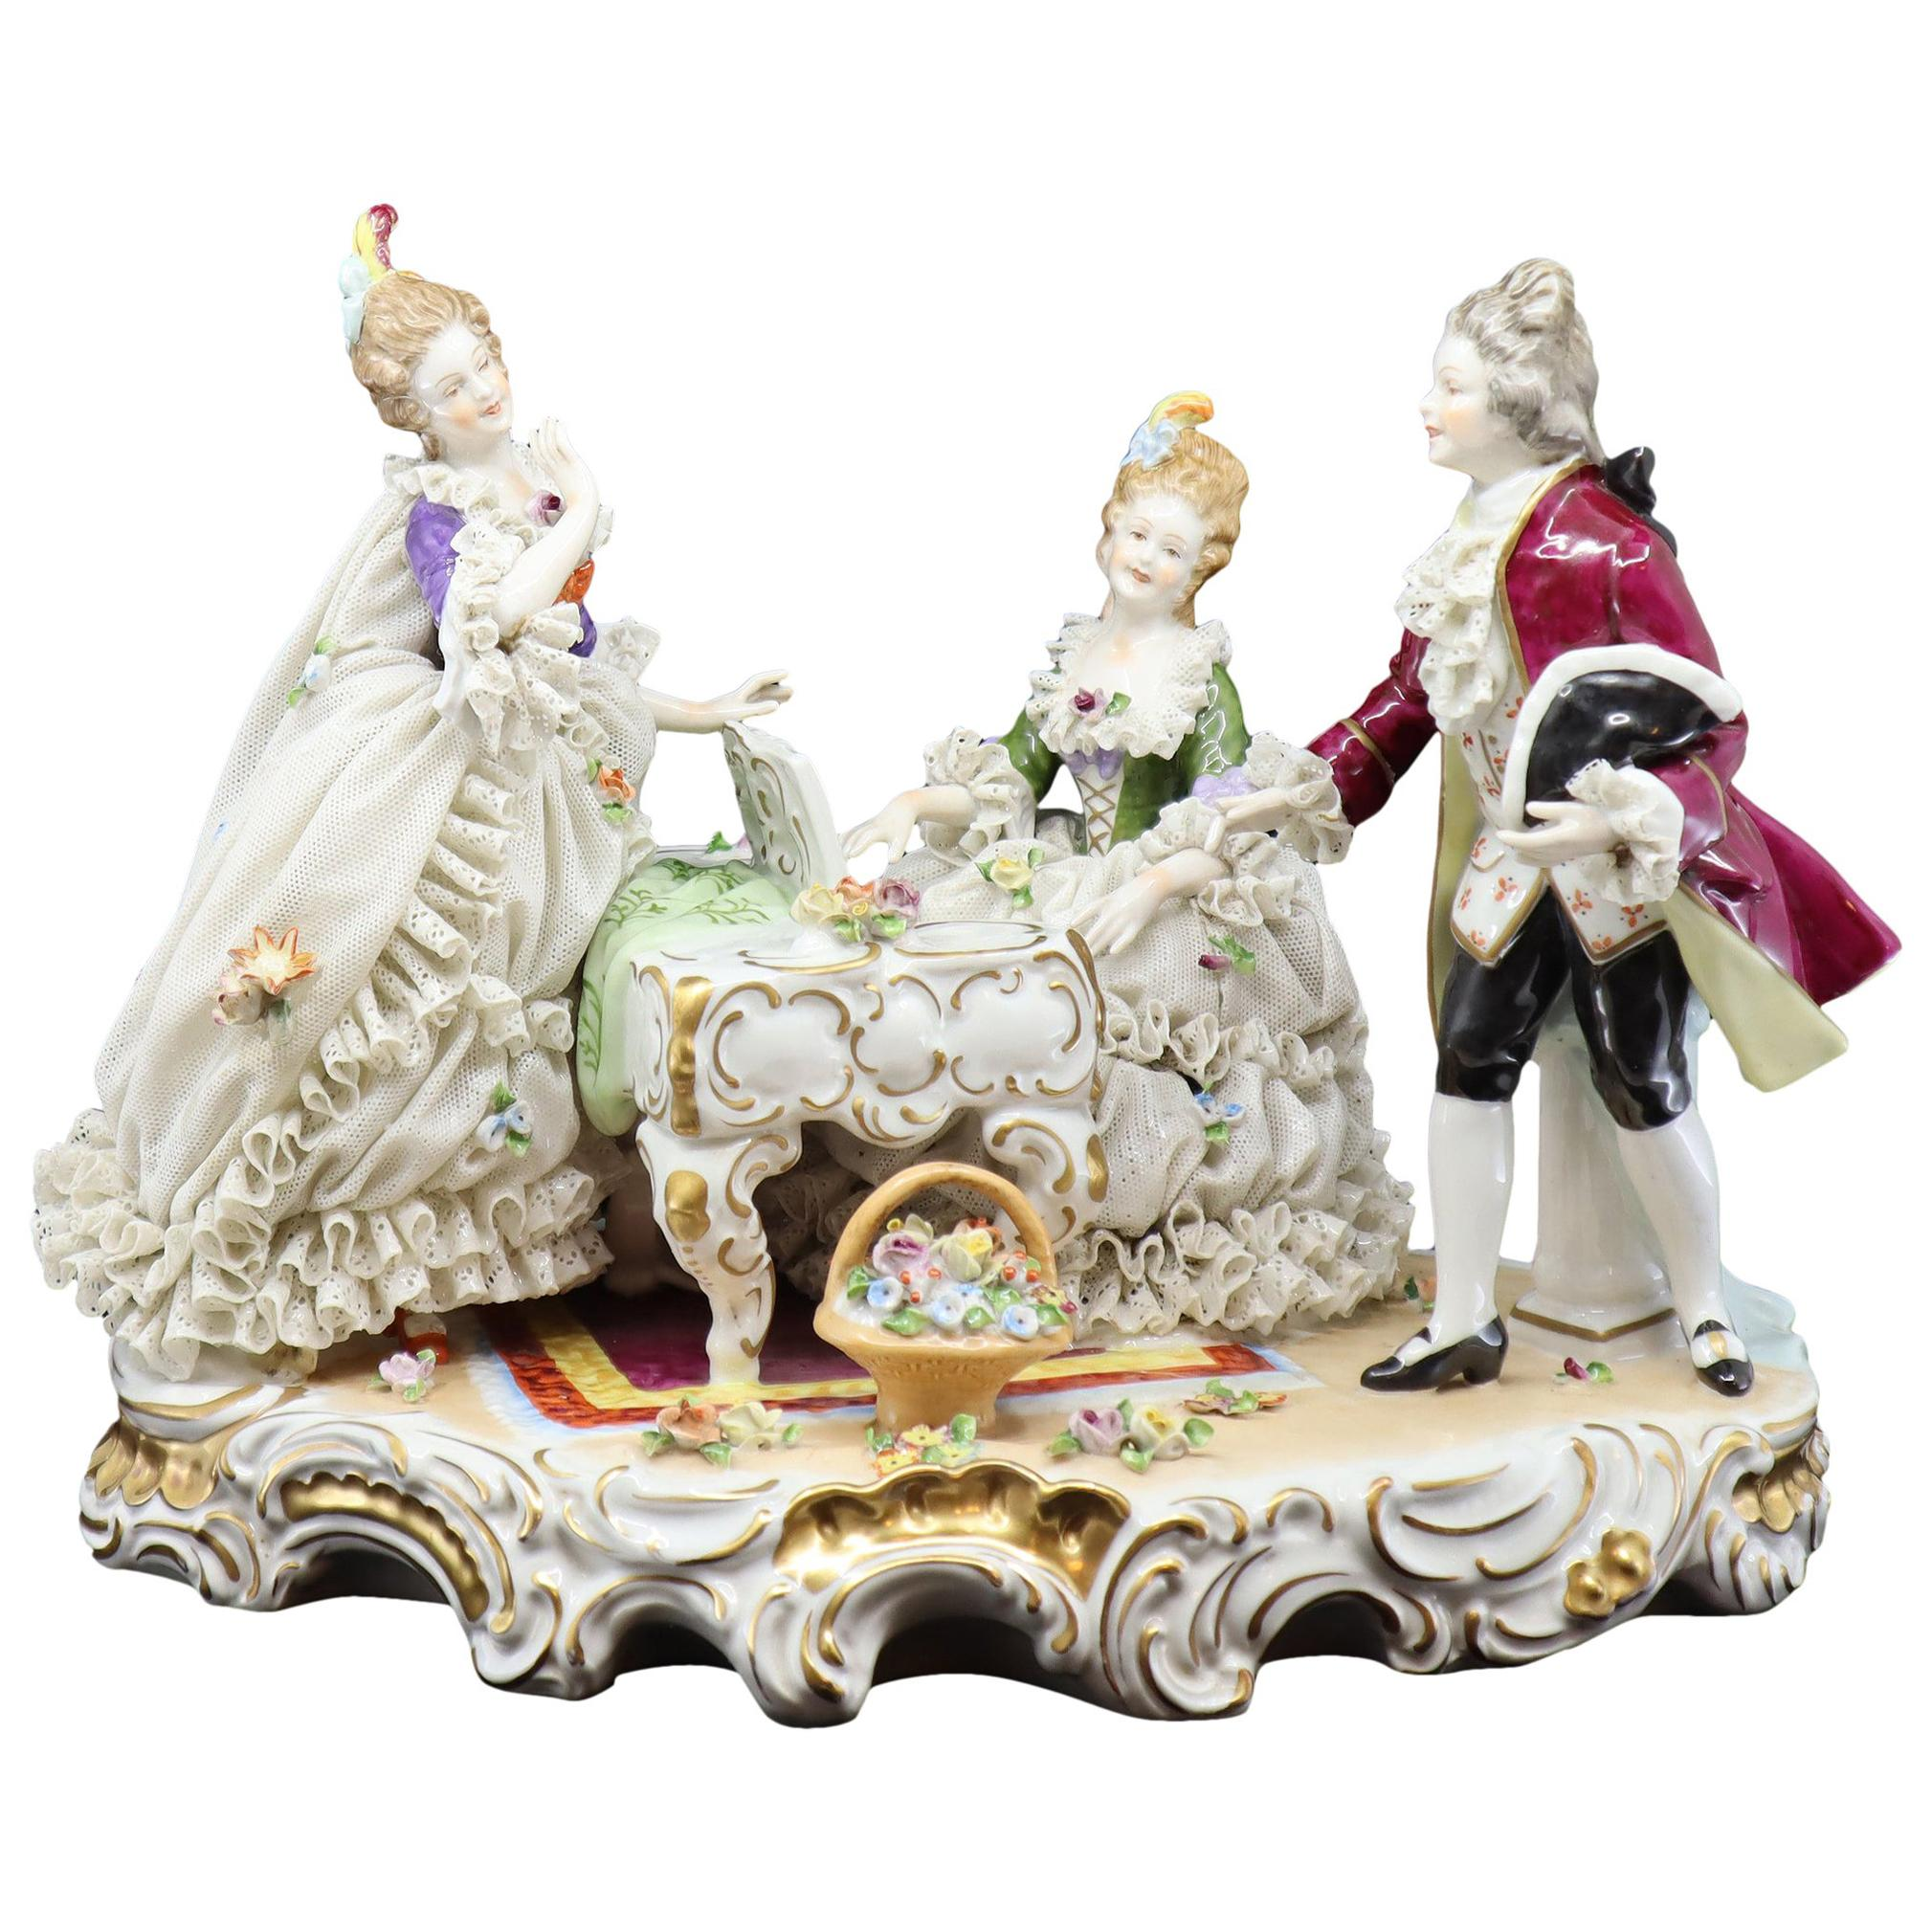 19th Century, Napoli Hand Painted Porcelain Figure Musical Group